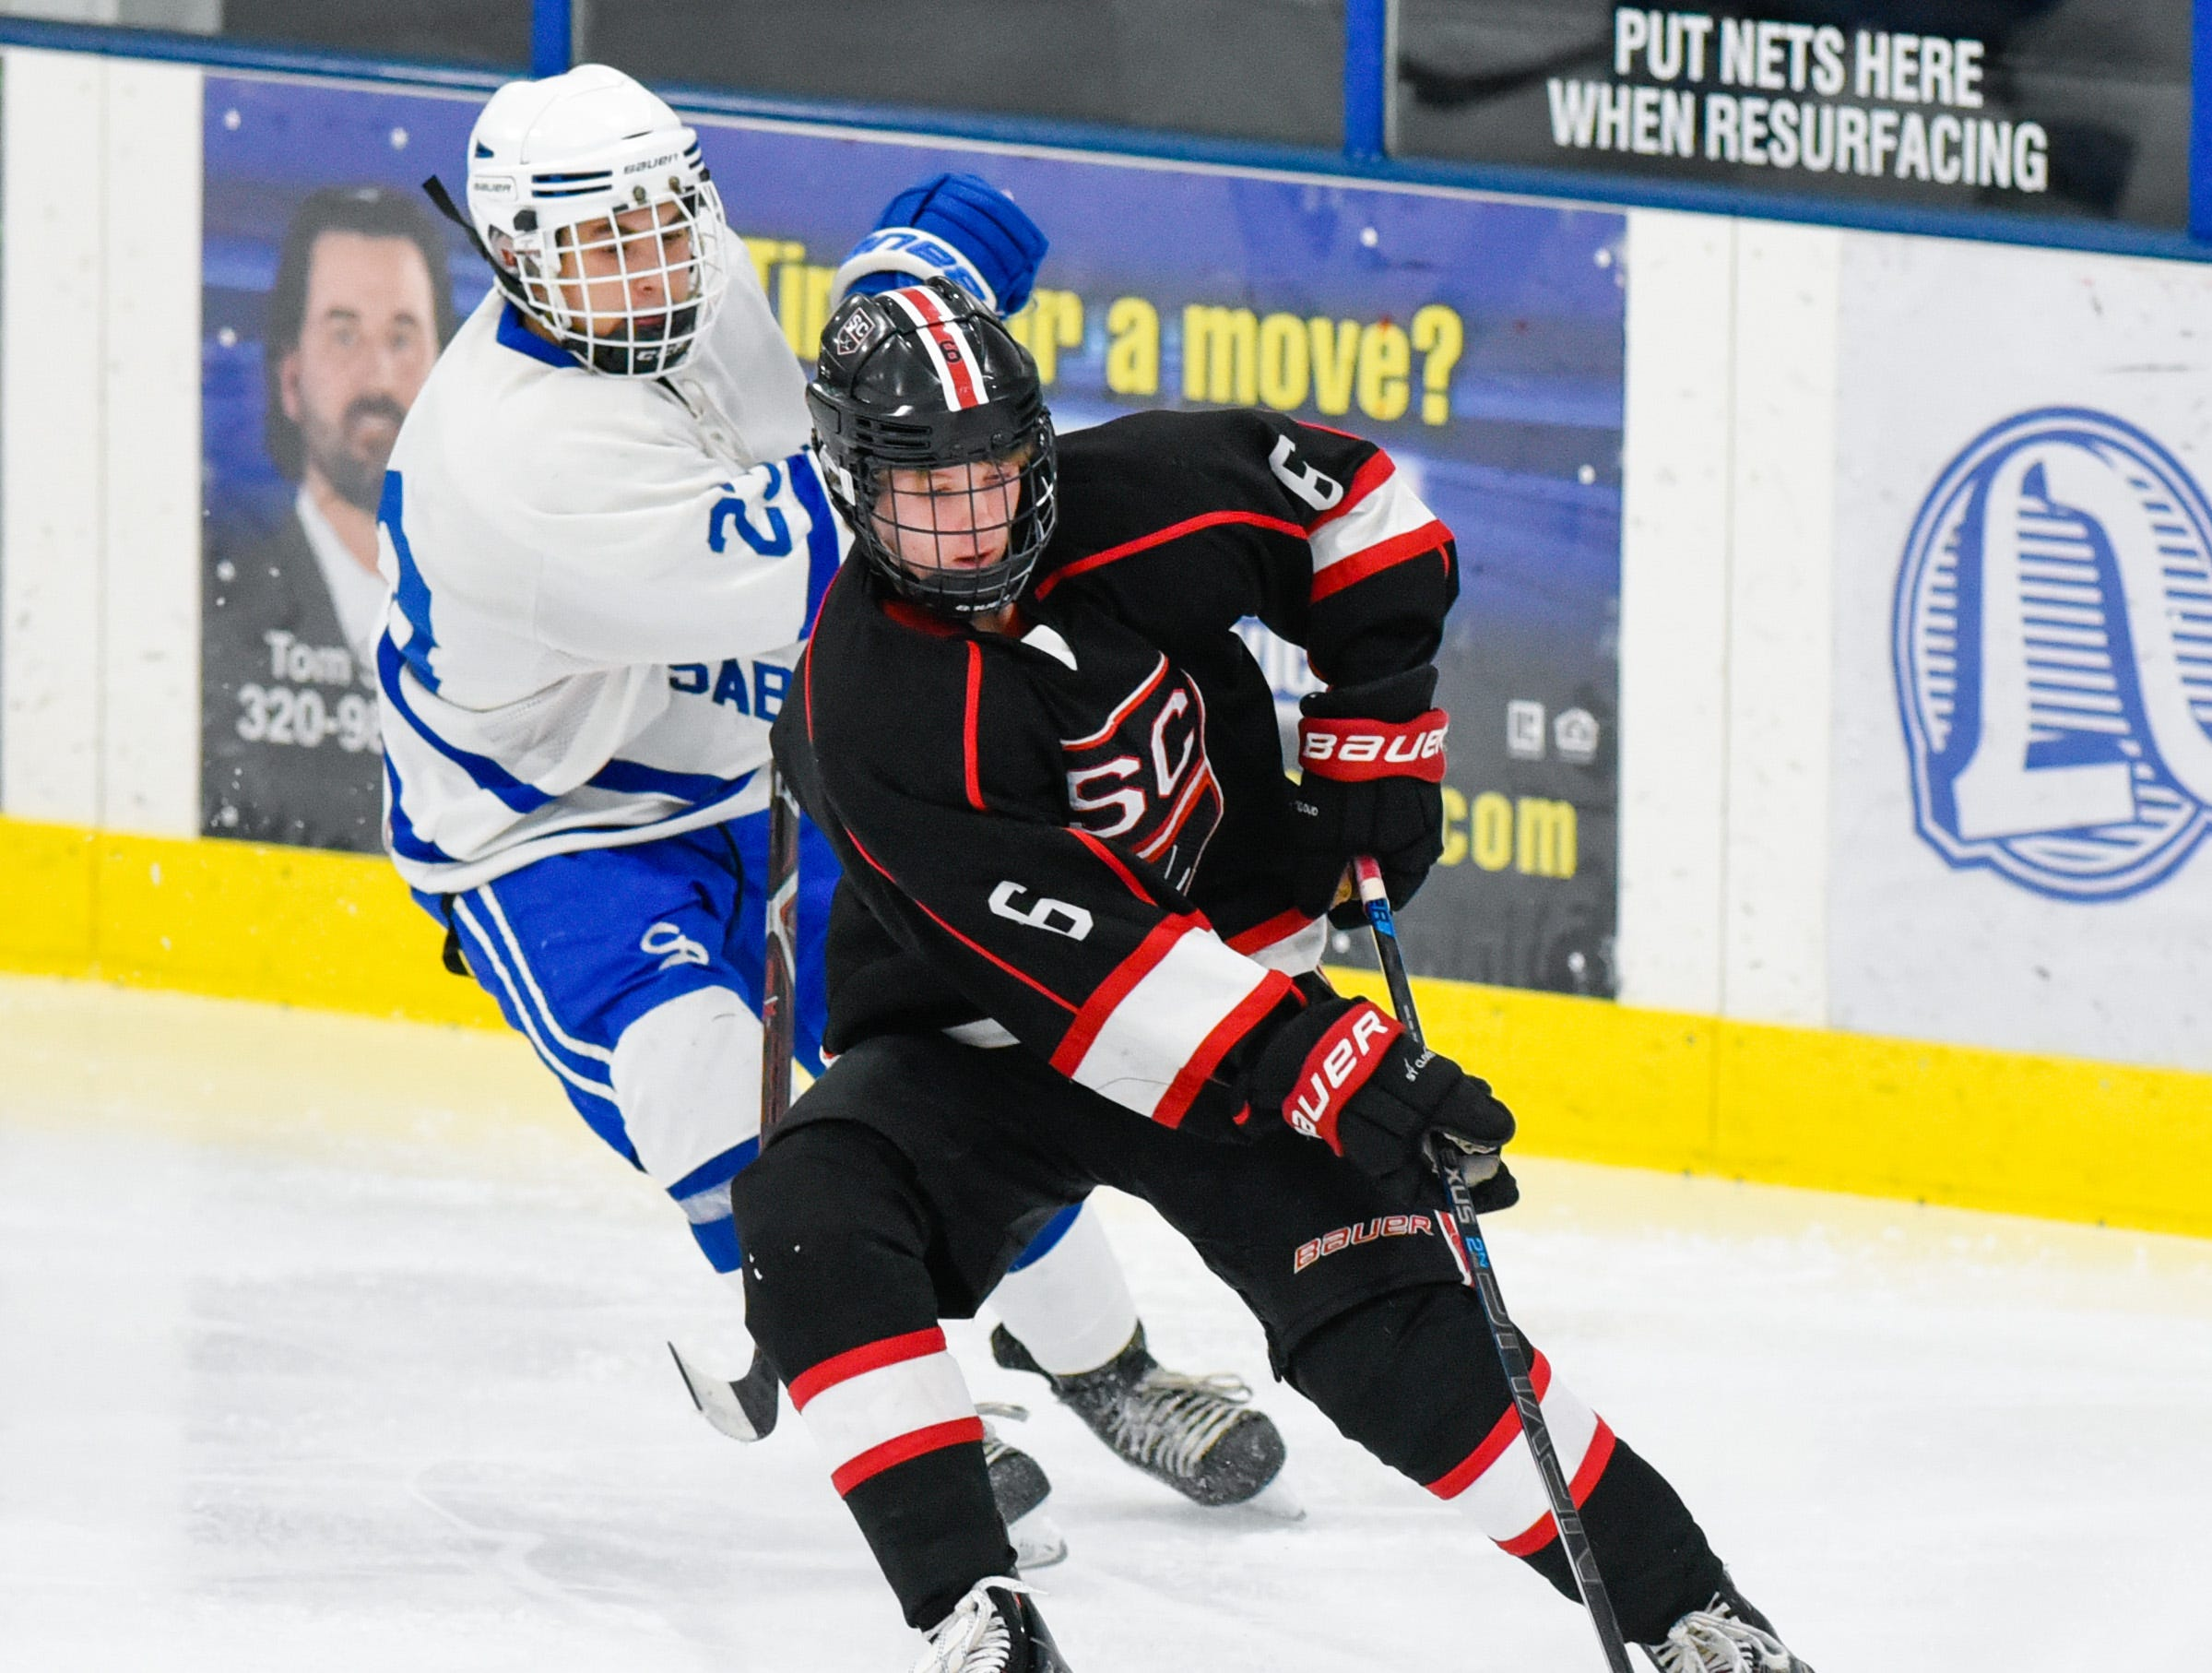 St. Cloud's Eric Warner keeps the puck away from Sartell's Nicholas Buiceag-Arama during the first period Tuesday, Dec. 18, at the Bernick's Arena in Sartell.